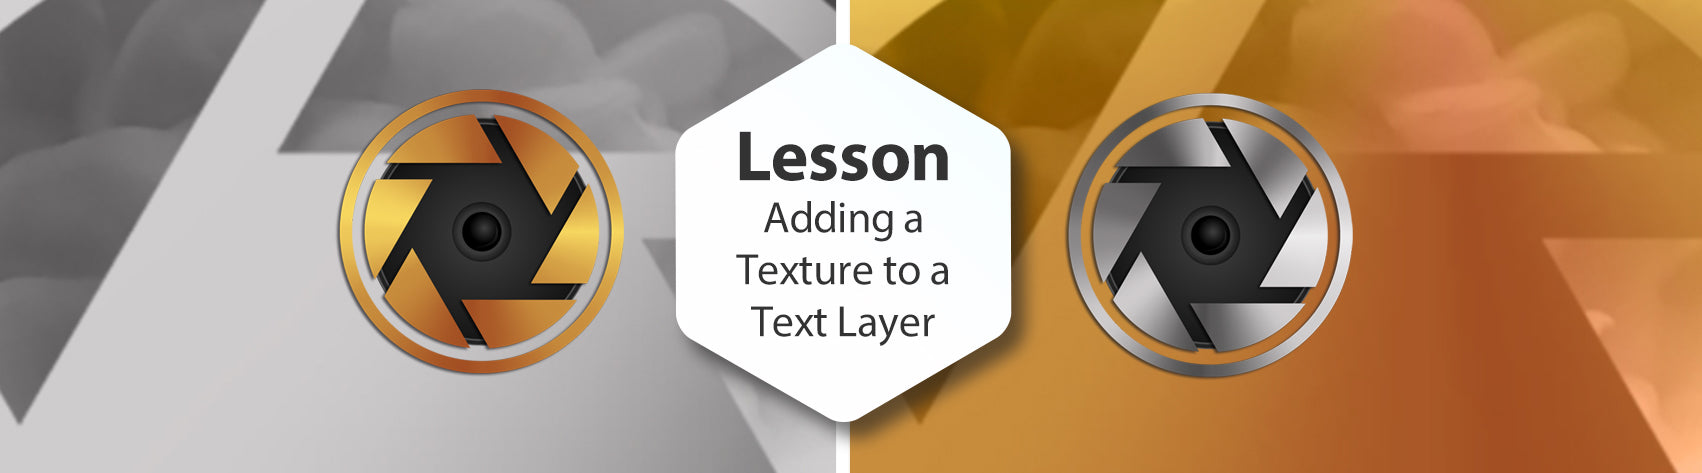 Lesson - Adding a Texture to a Text Layer